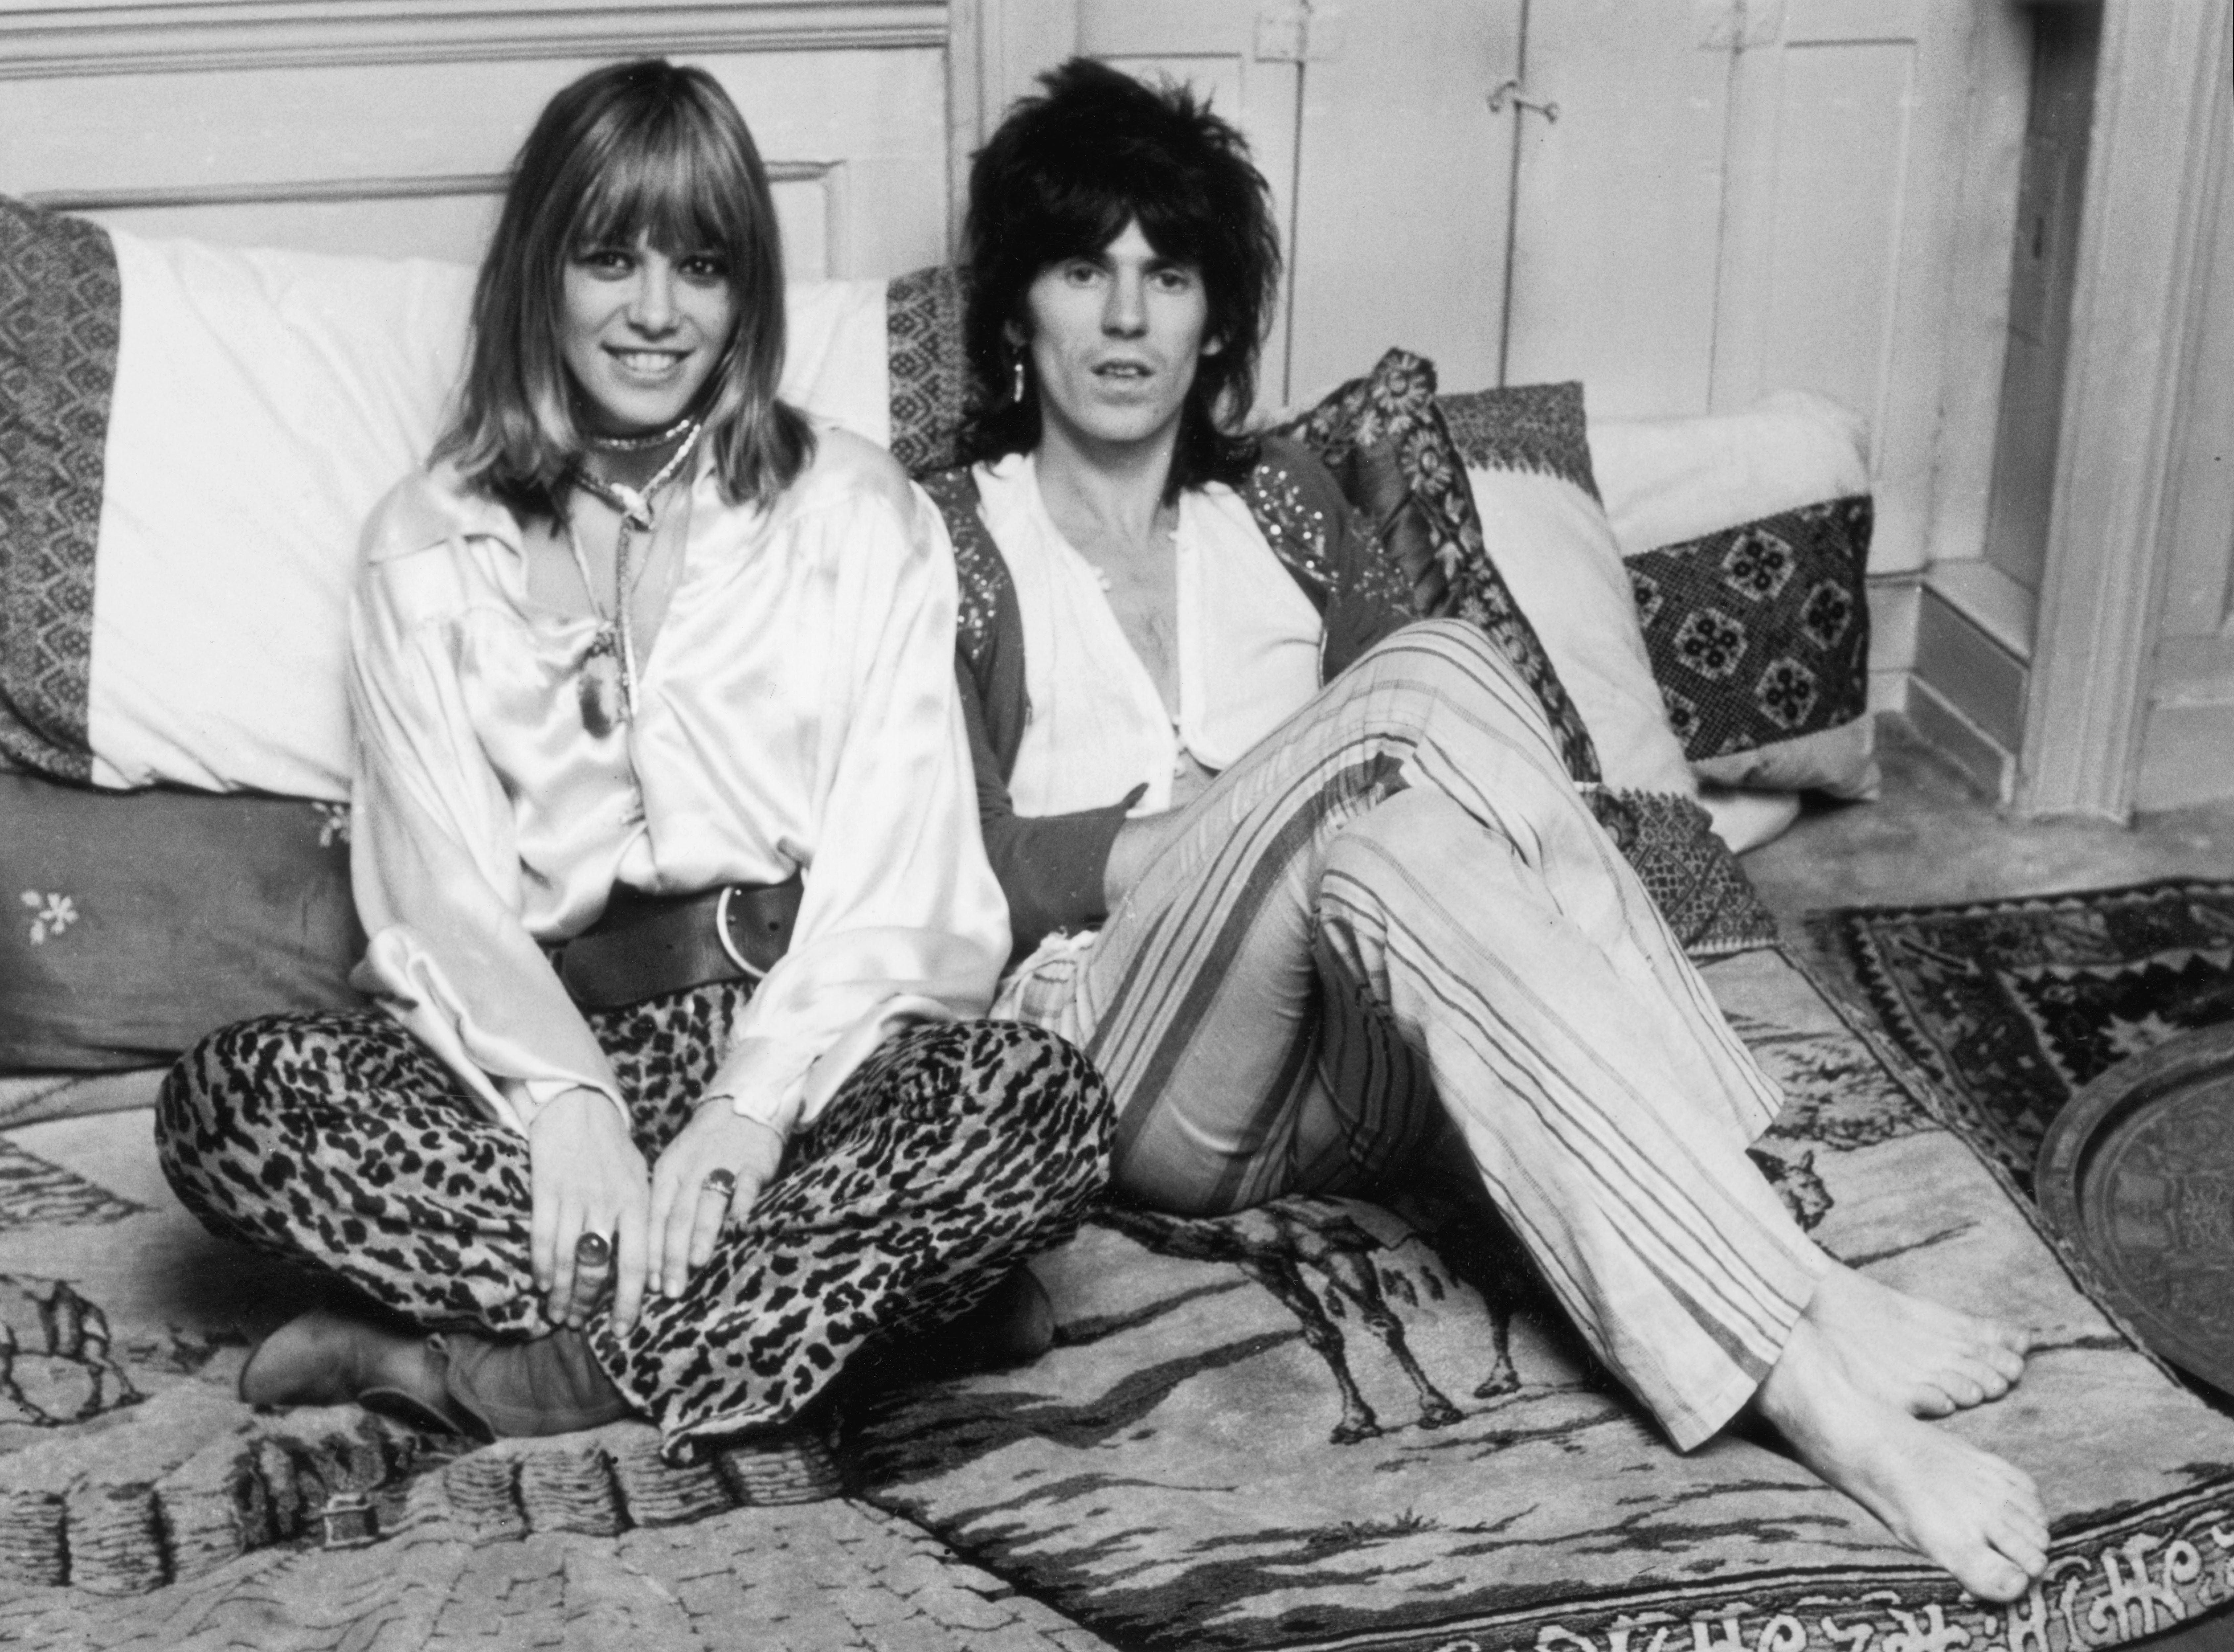 Anita and Keith in